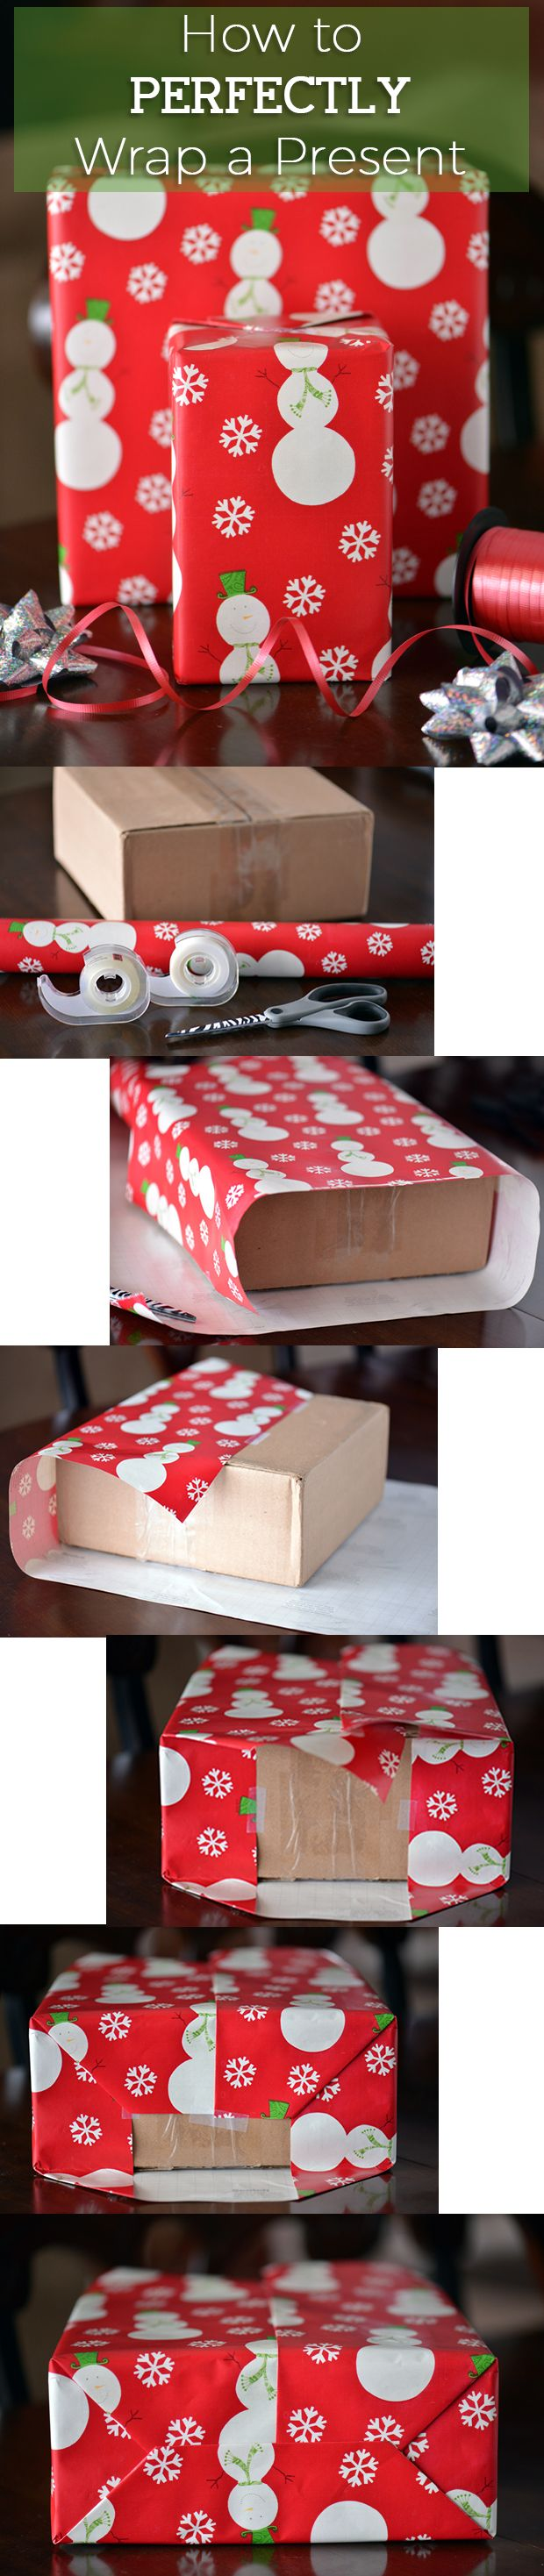 No more struggling with wrapping paper! This is how to wrap presents perfectly every single time. Happy Holidays! http://www.ehow.com/ehow-crafts/blog/how-to-perfectly-wrap-a-present/?utm_source=pinterest.com&utm_medium=referral&utm_content=blog&utm_campaign=fanpage